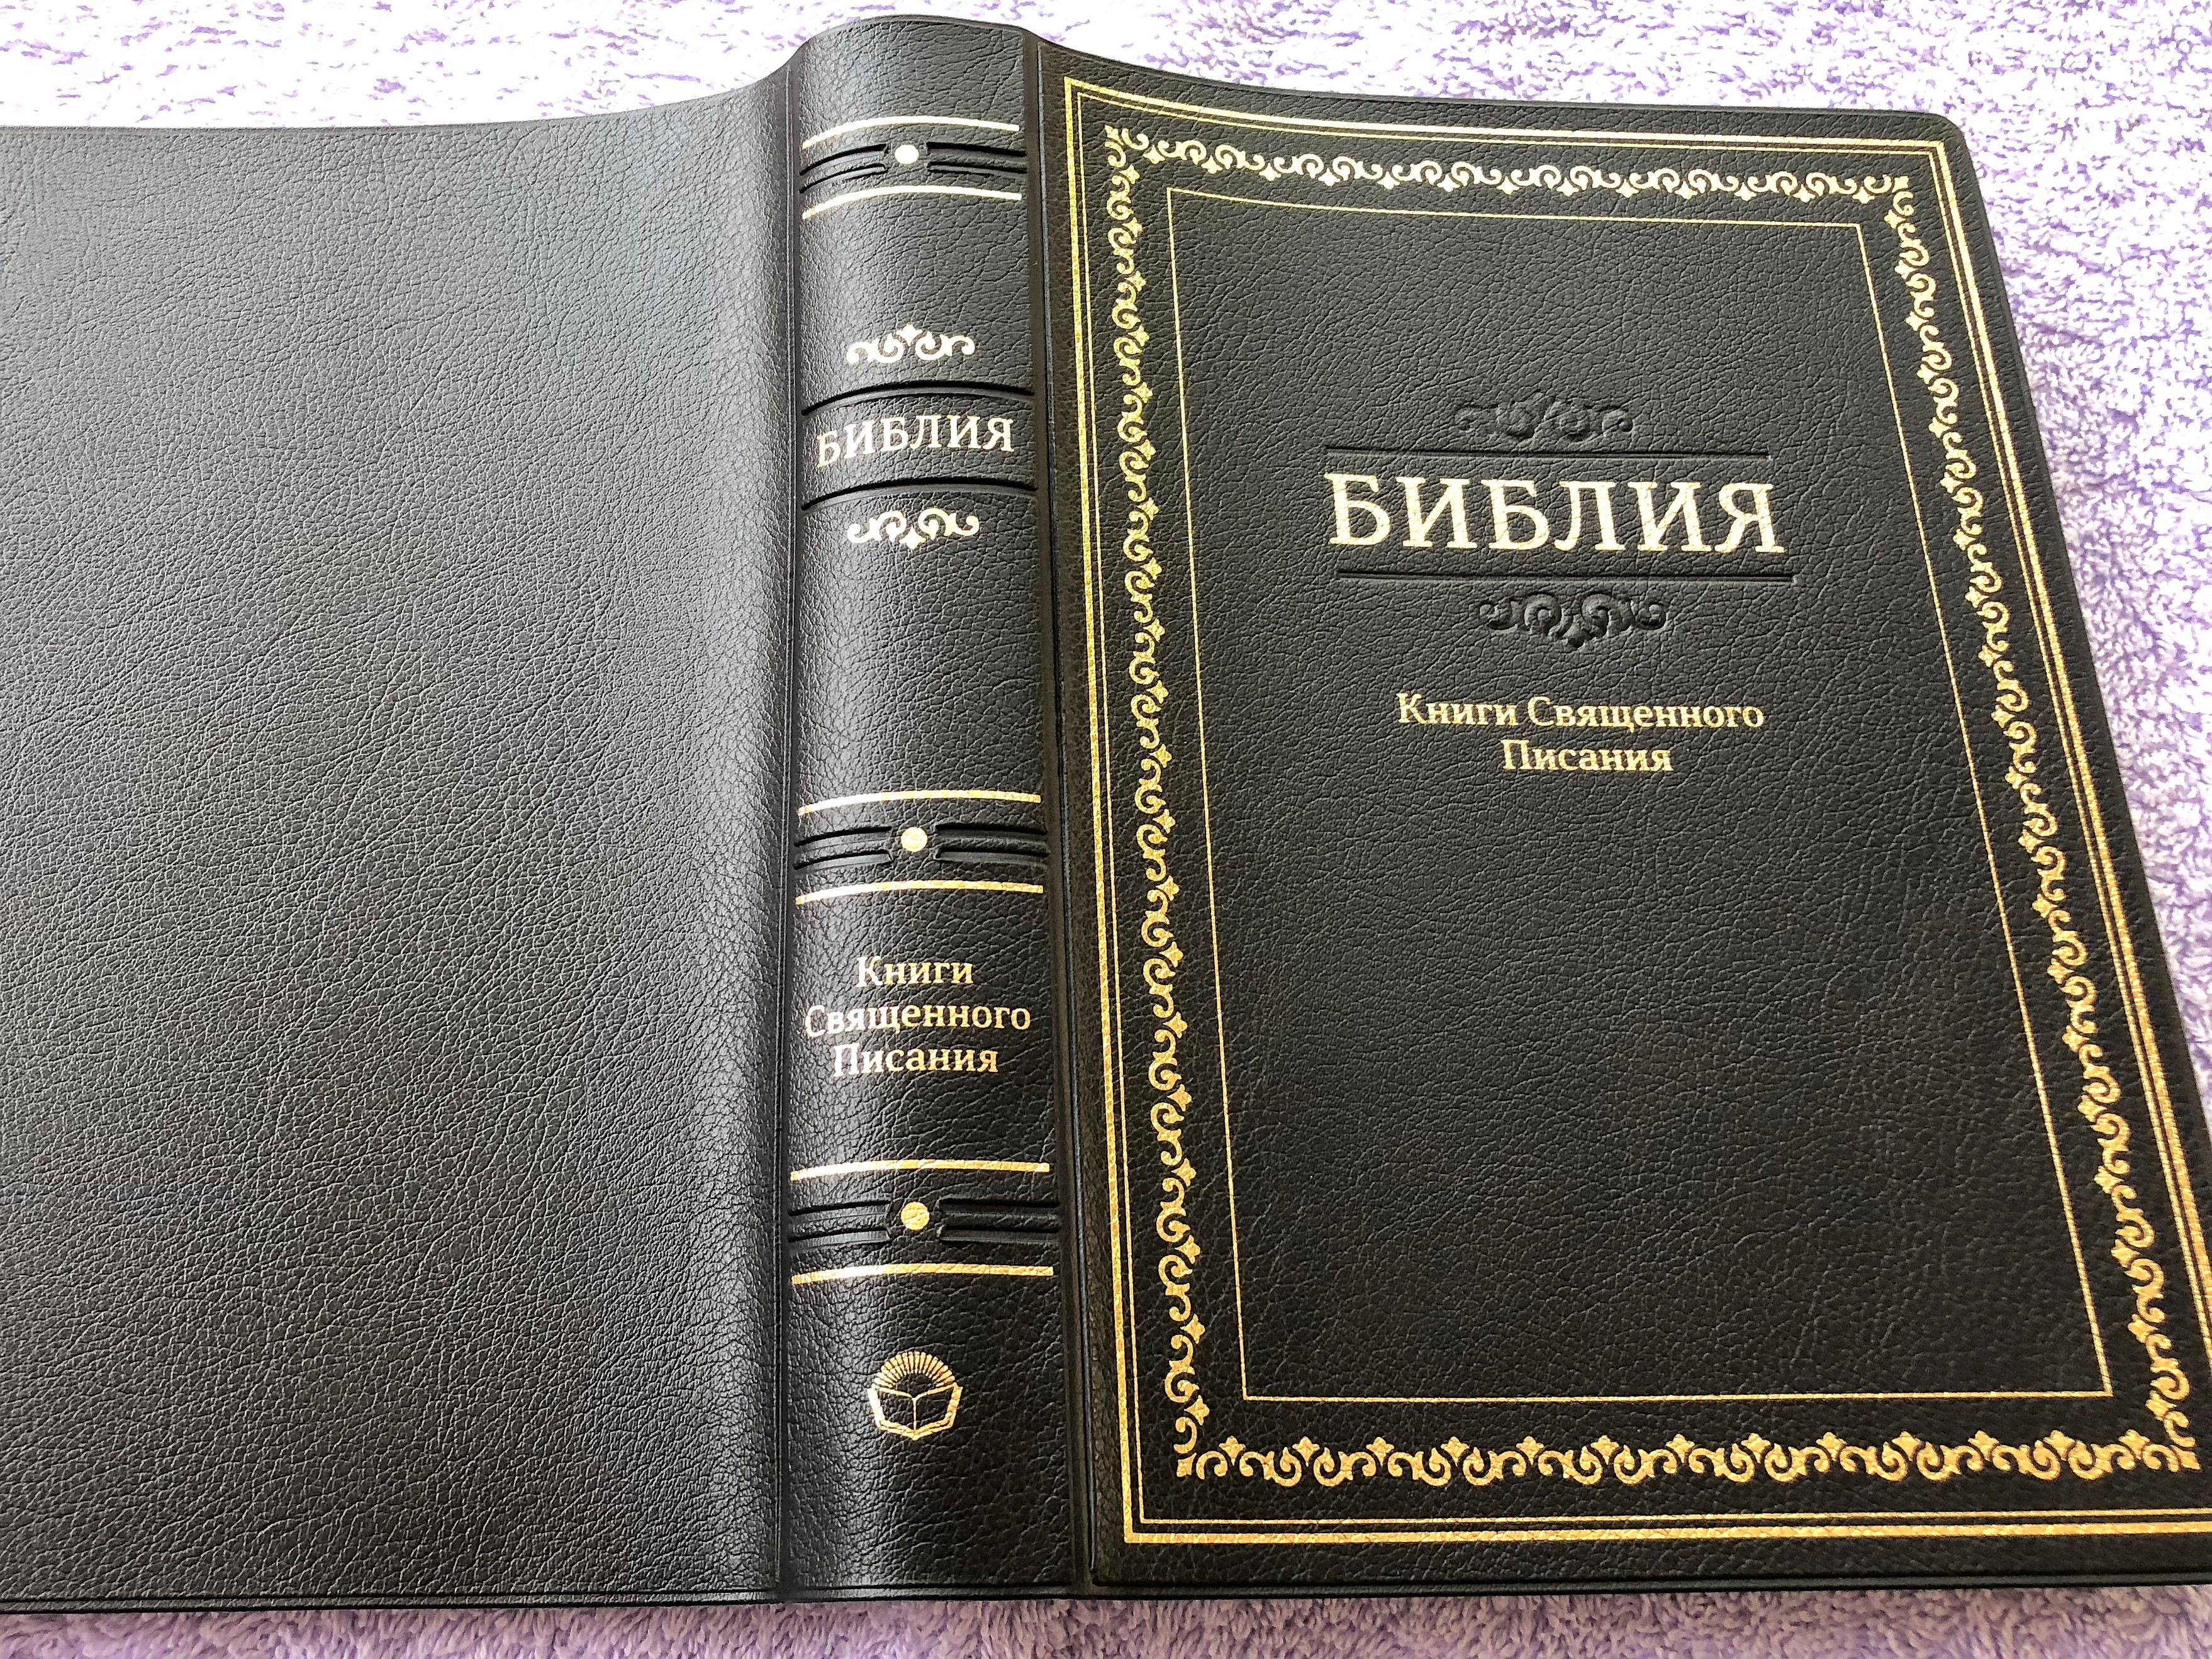 russian-bible-beautifully-designed-cover-black-vinyl-bound-with-column-references-18-.jpg